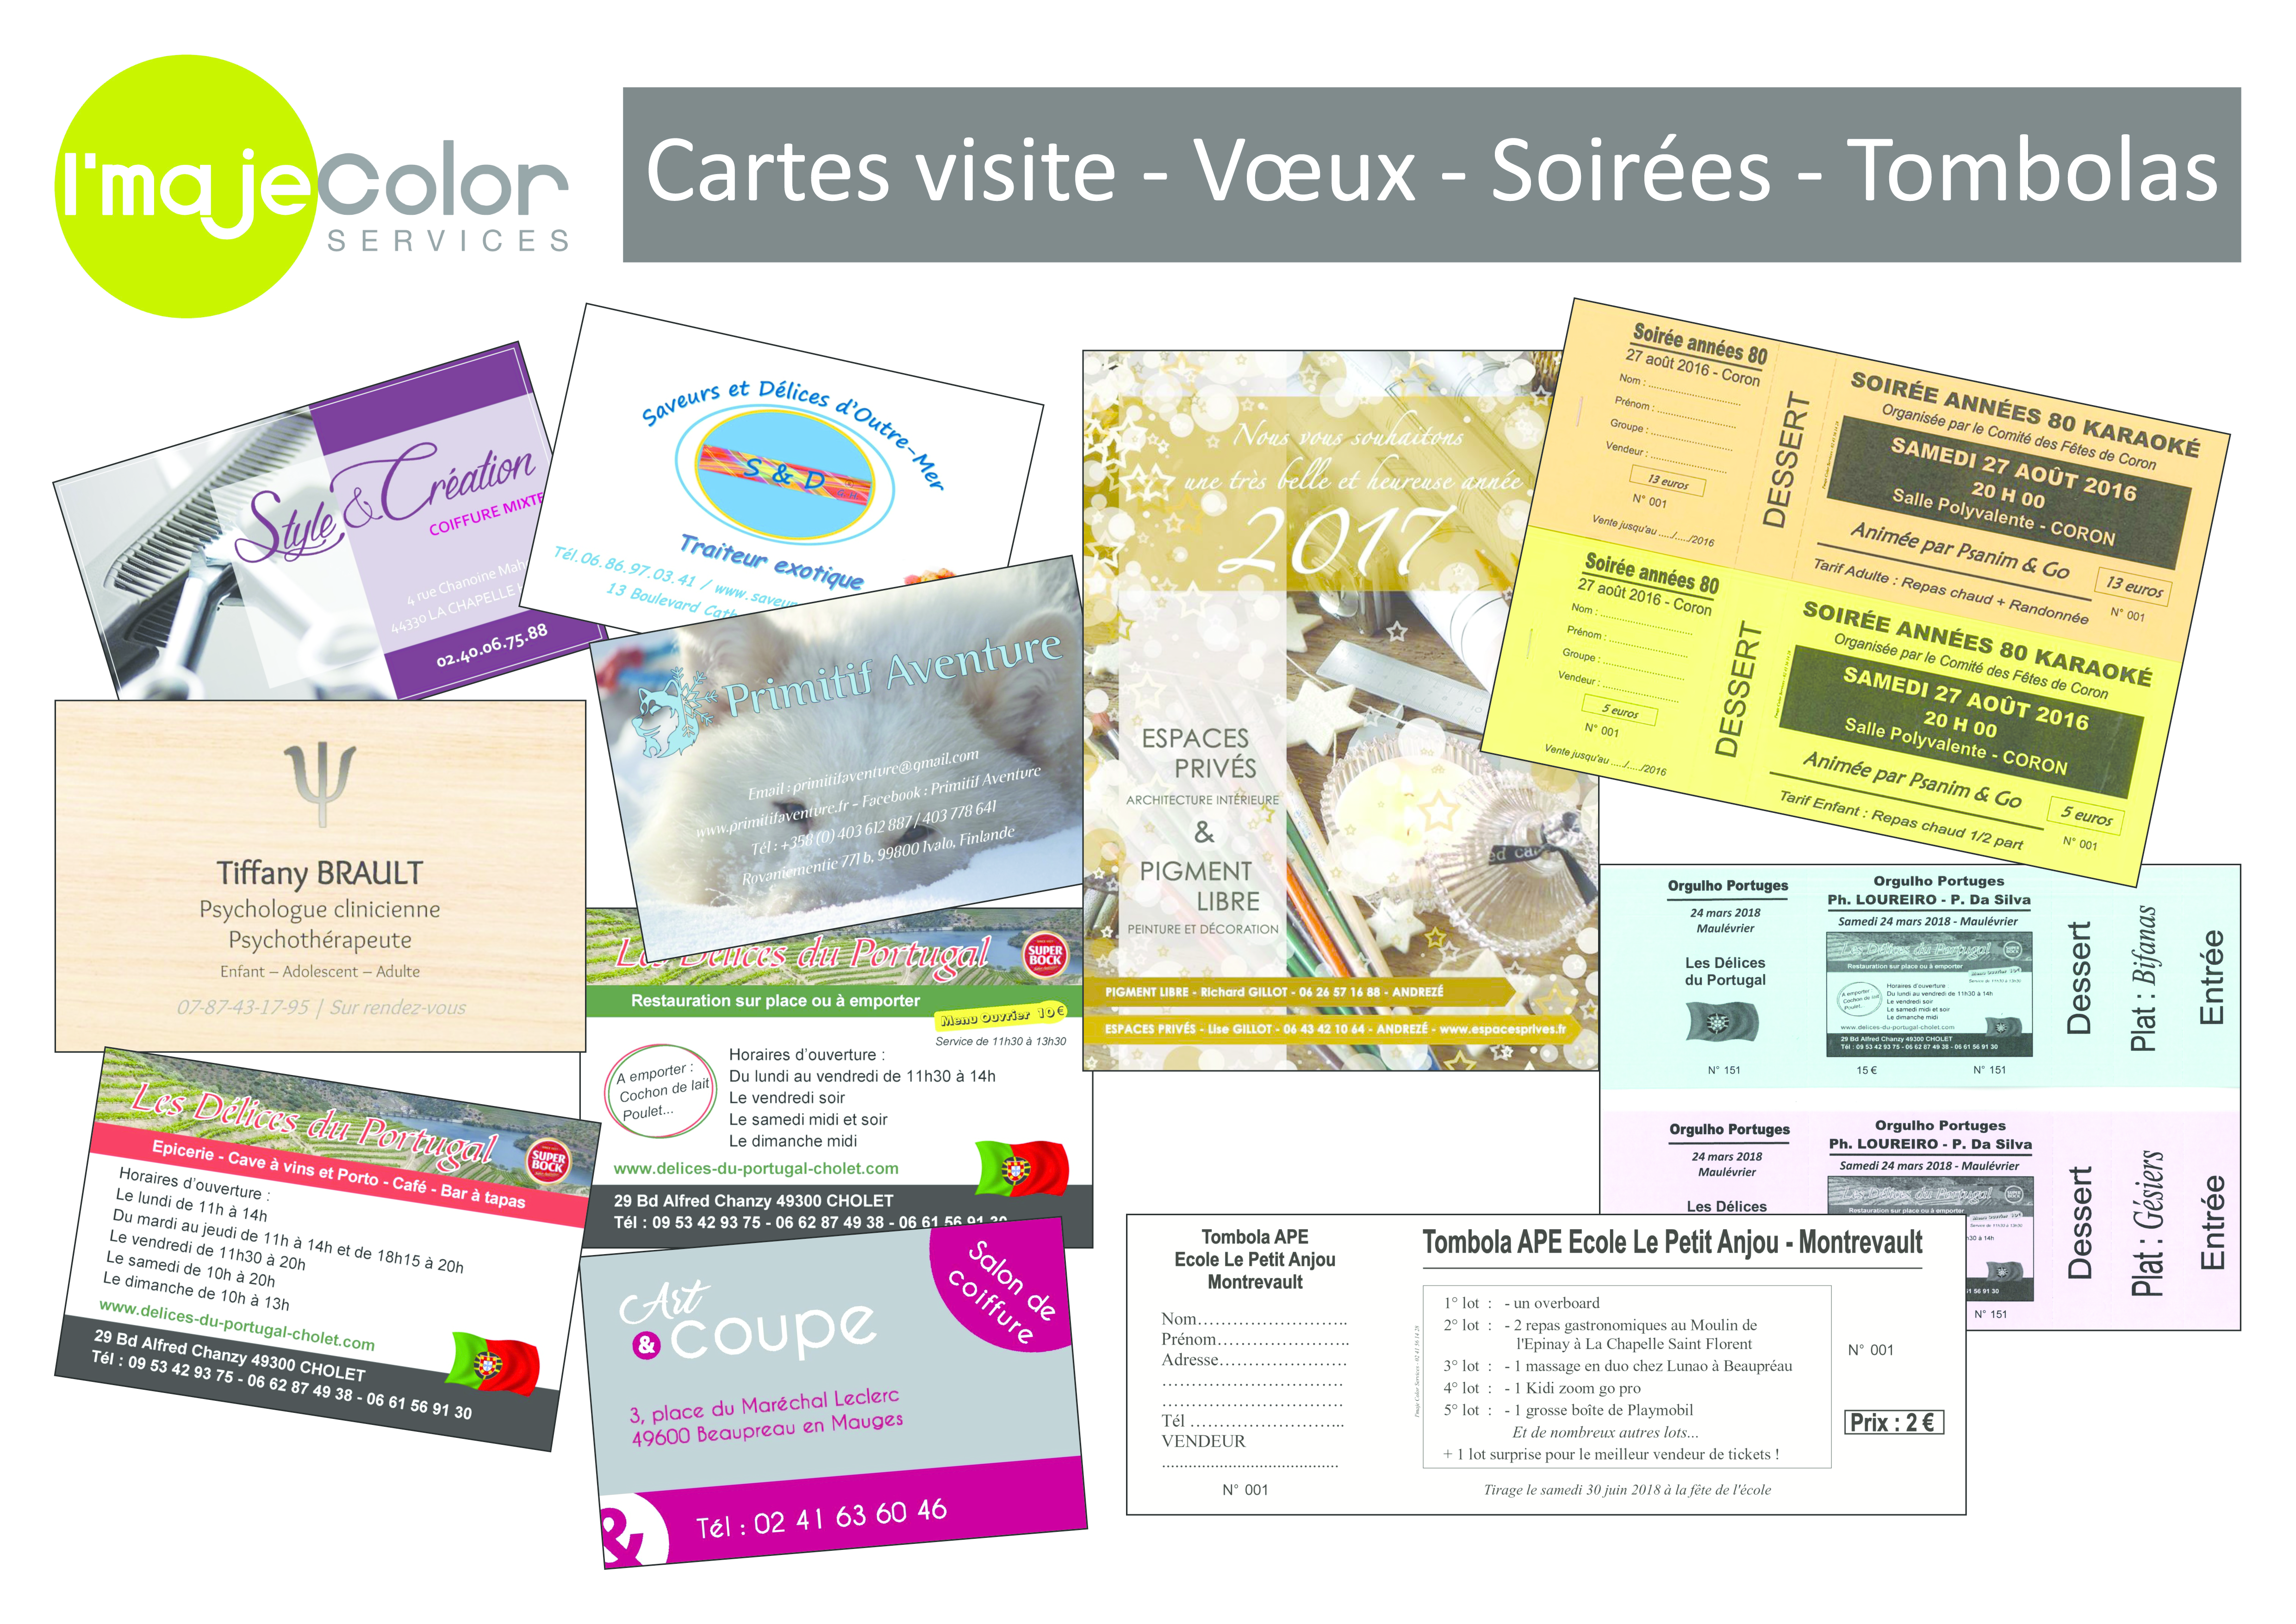 Cartes De Visites Postales Faire Parts Invitations Soires Tombolas Banderoles Roll Up Panneaux Pvc Ou Dibon